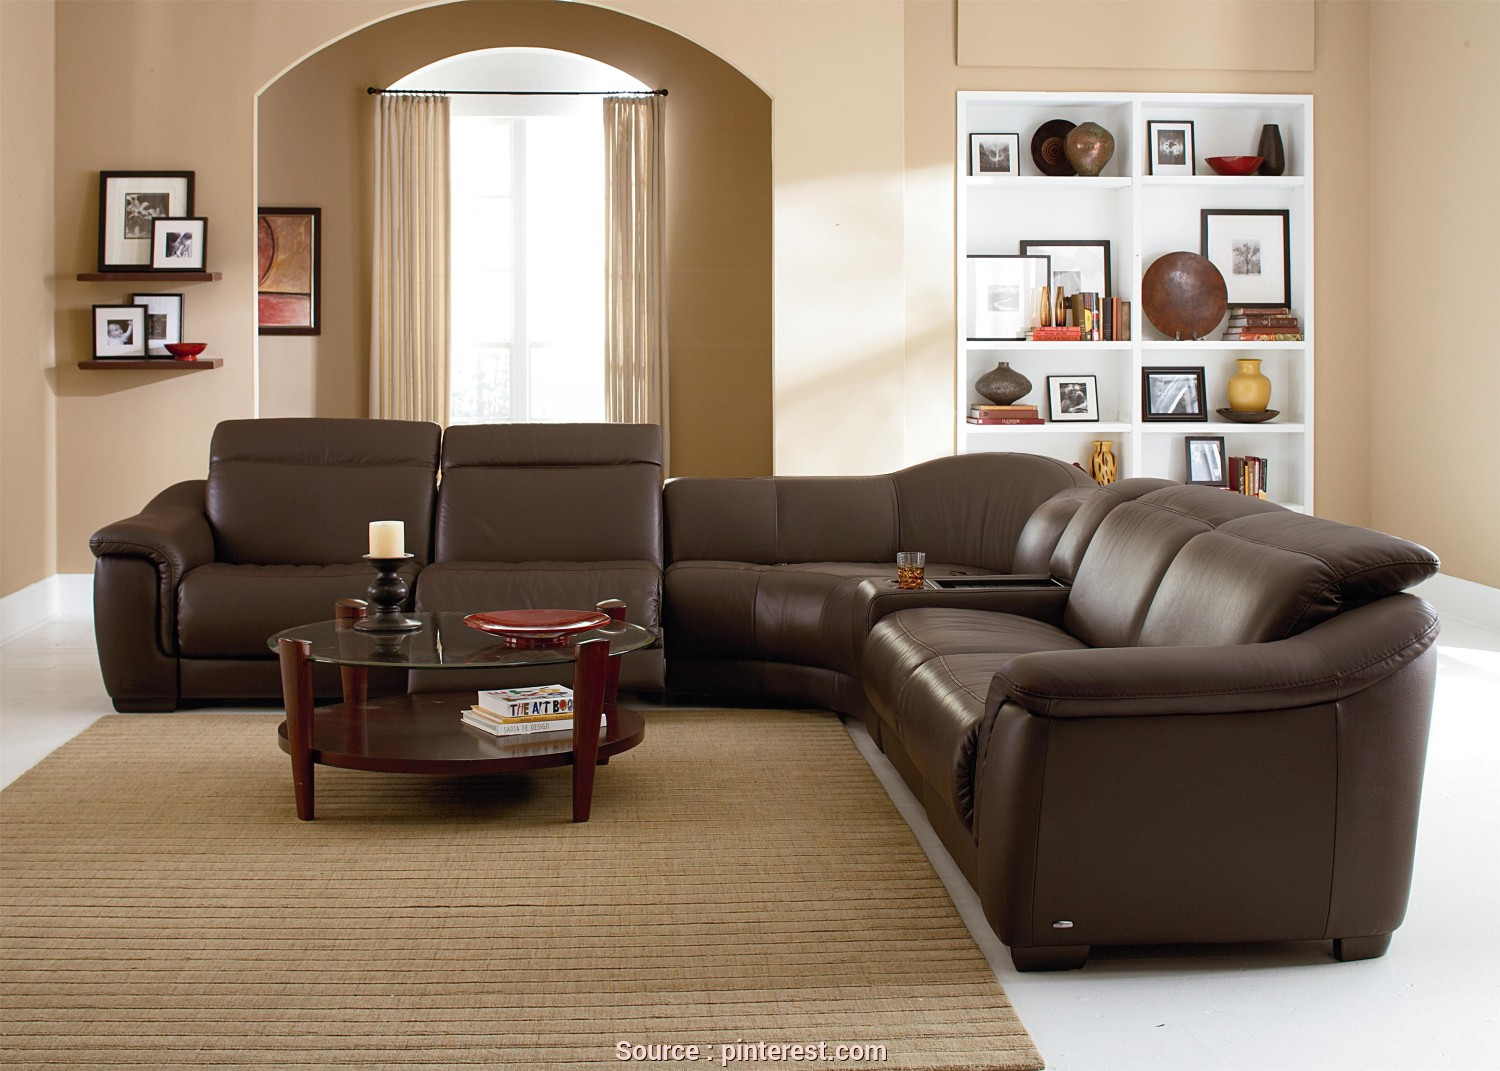 Divano Samoa Urban, Grande B641 Contemporary Leather Reclining Sectional Sofa With Built In Speakers, Storage Console By Natuzzi Editions, Baer